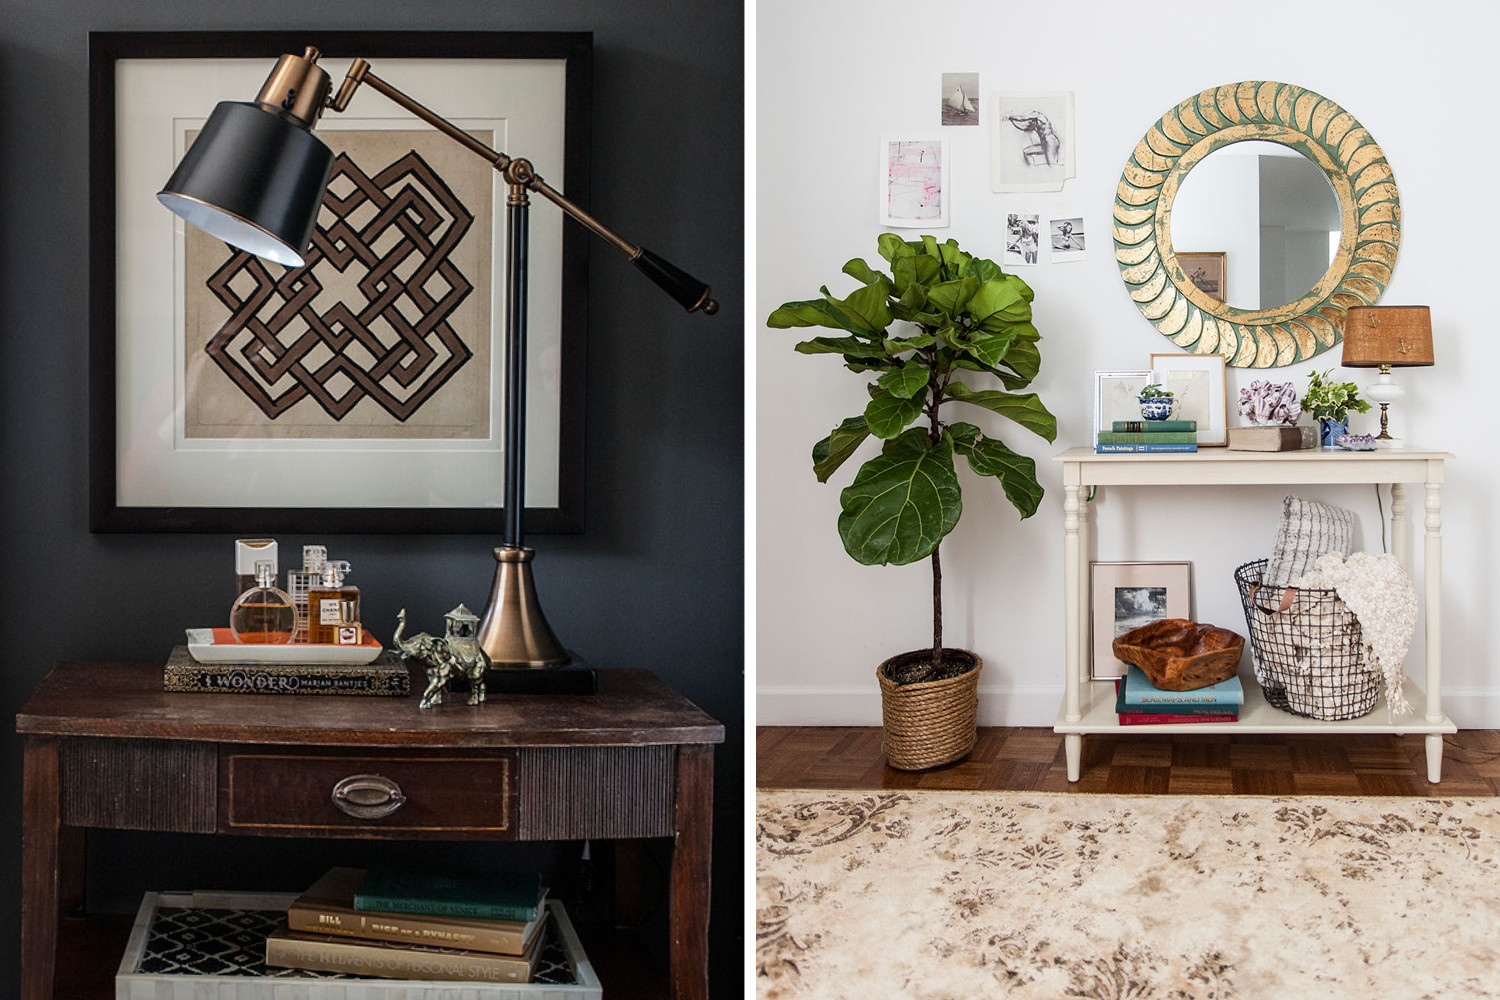 Scores galore from a HomeGoods excursion fill the redecorated rooms of Lonny associate editor Mackenzie Schmidt, left, and editorial coordinator Sarah Jean Shelton. Additional prop styling by Kaylei McGaw.